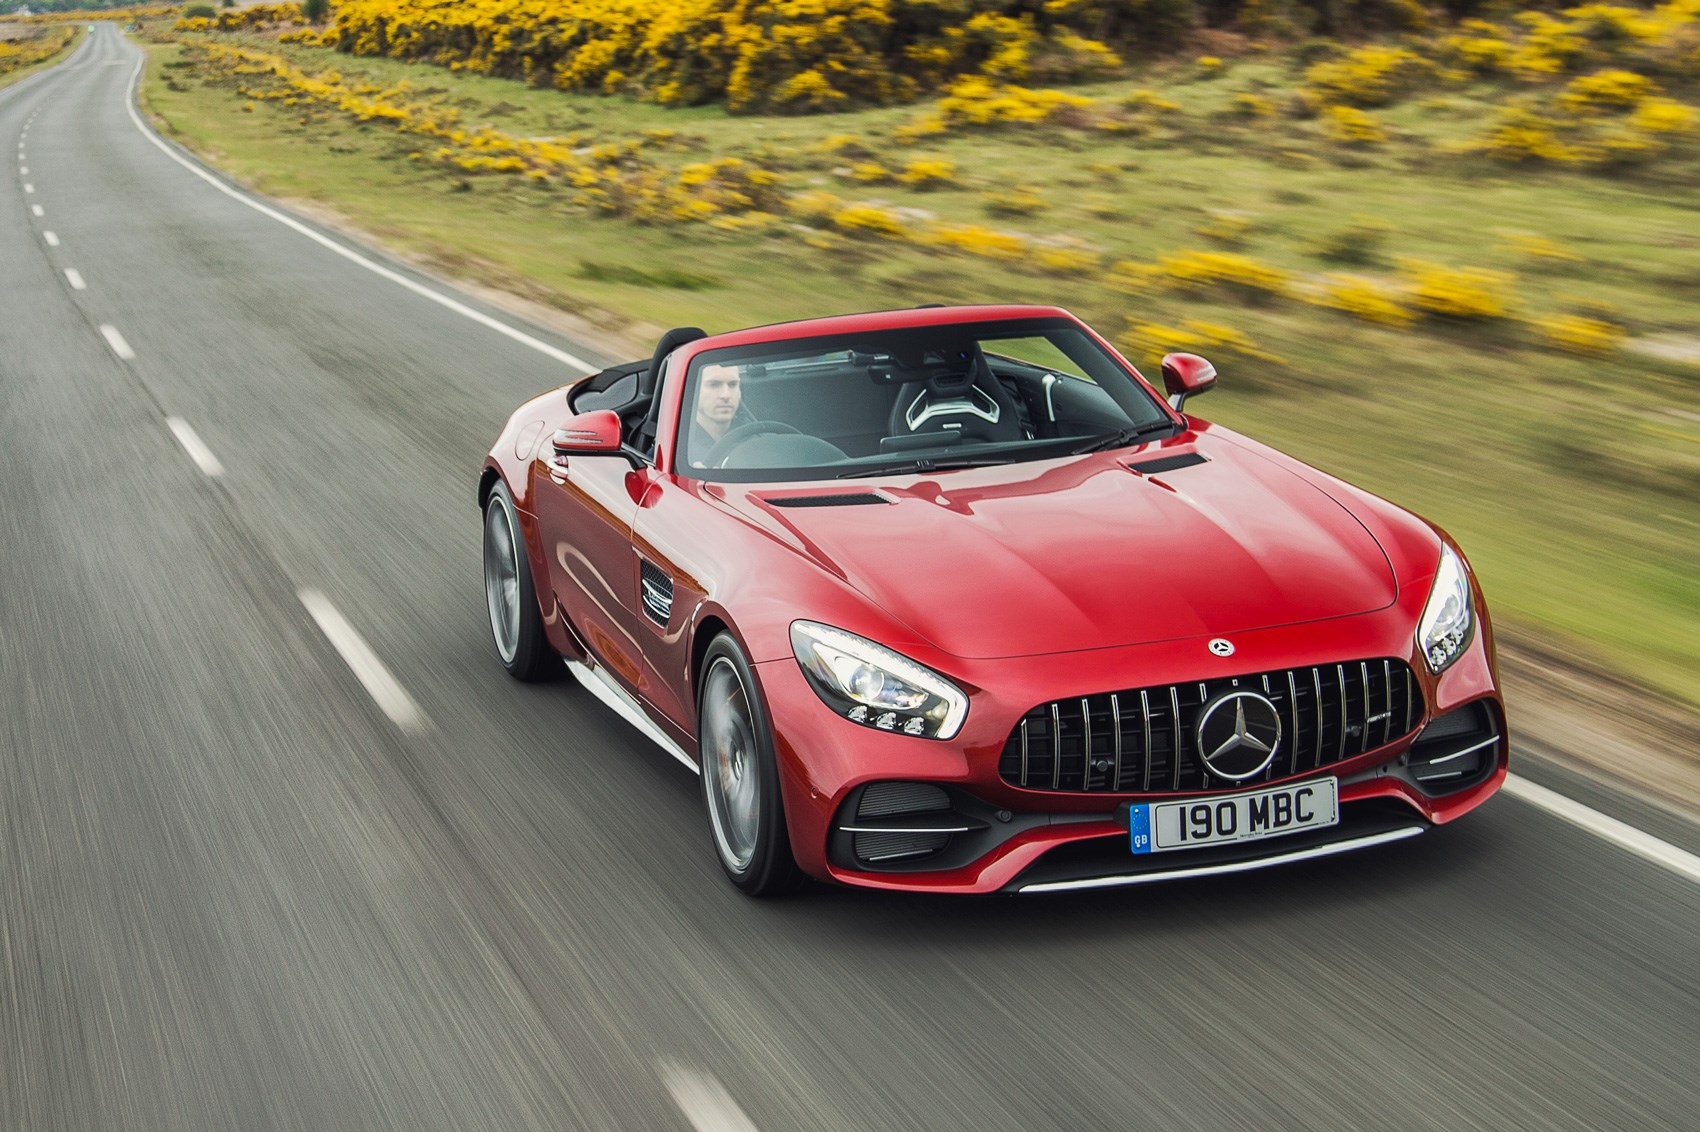 mercedes amg gt c roadster 2017 uk road test review car magazine. Black Bedroom Furniture Sets. Home Design Ideas